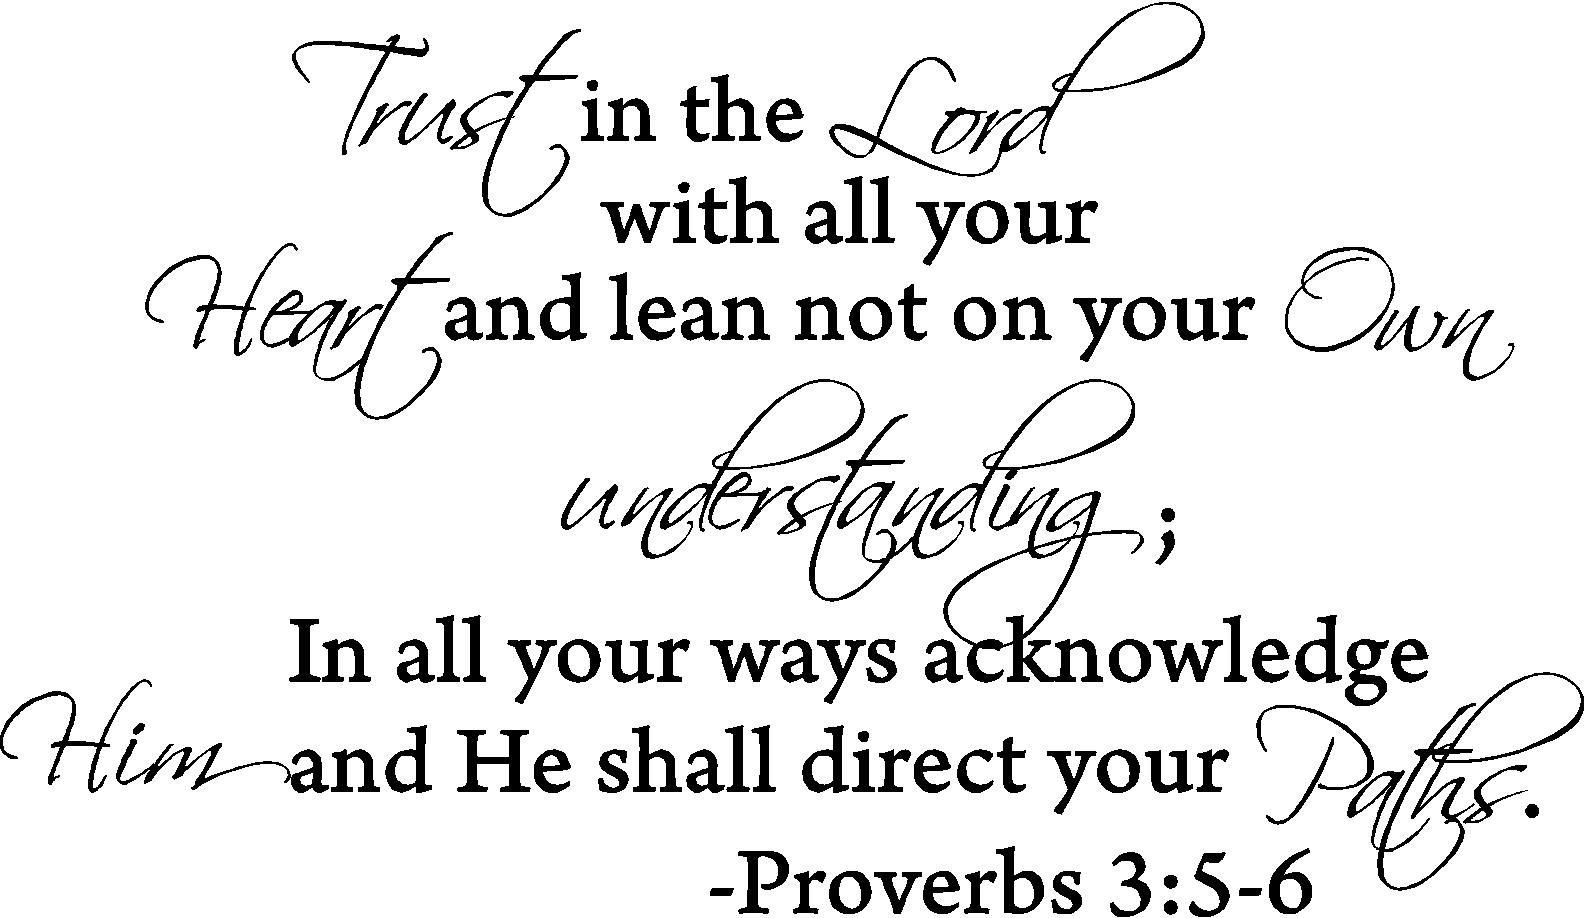 Trust in the lord with all your heart proverbs 3:5-6 Vinyl wall